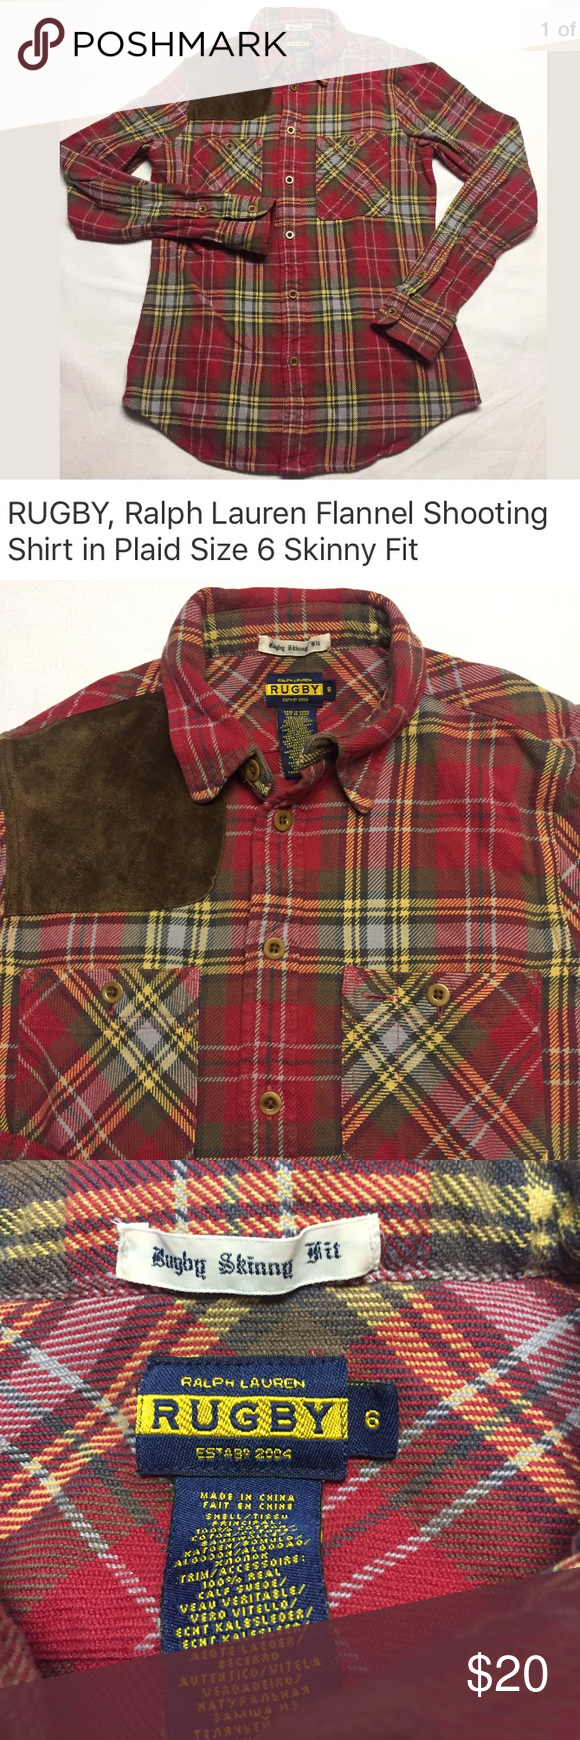 Rugby Ralph Lauren Flannel Shooting Shirt Shooting Shirts Flannel Womens Rugby